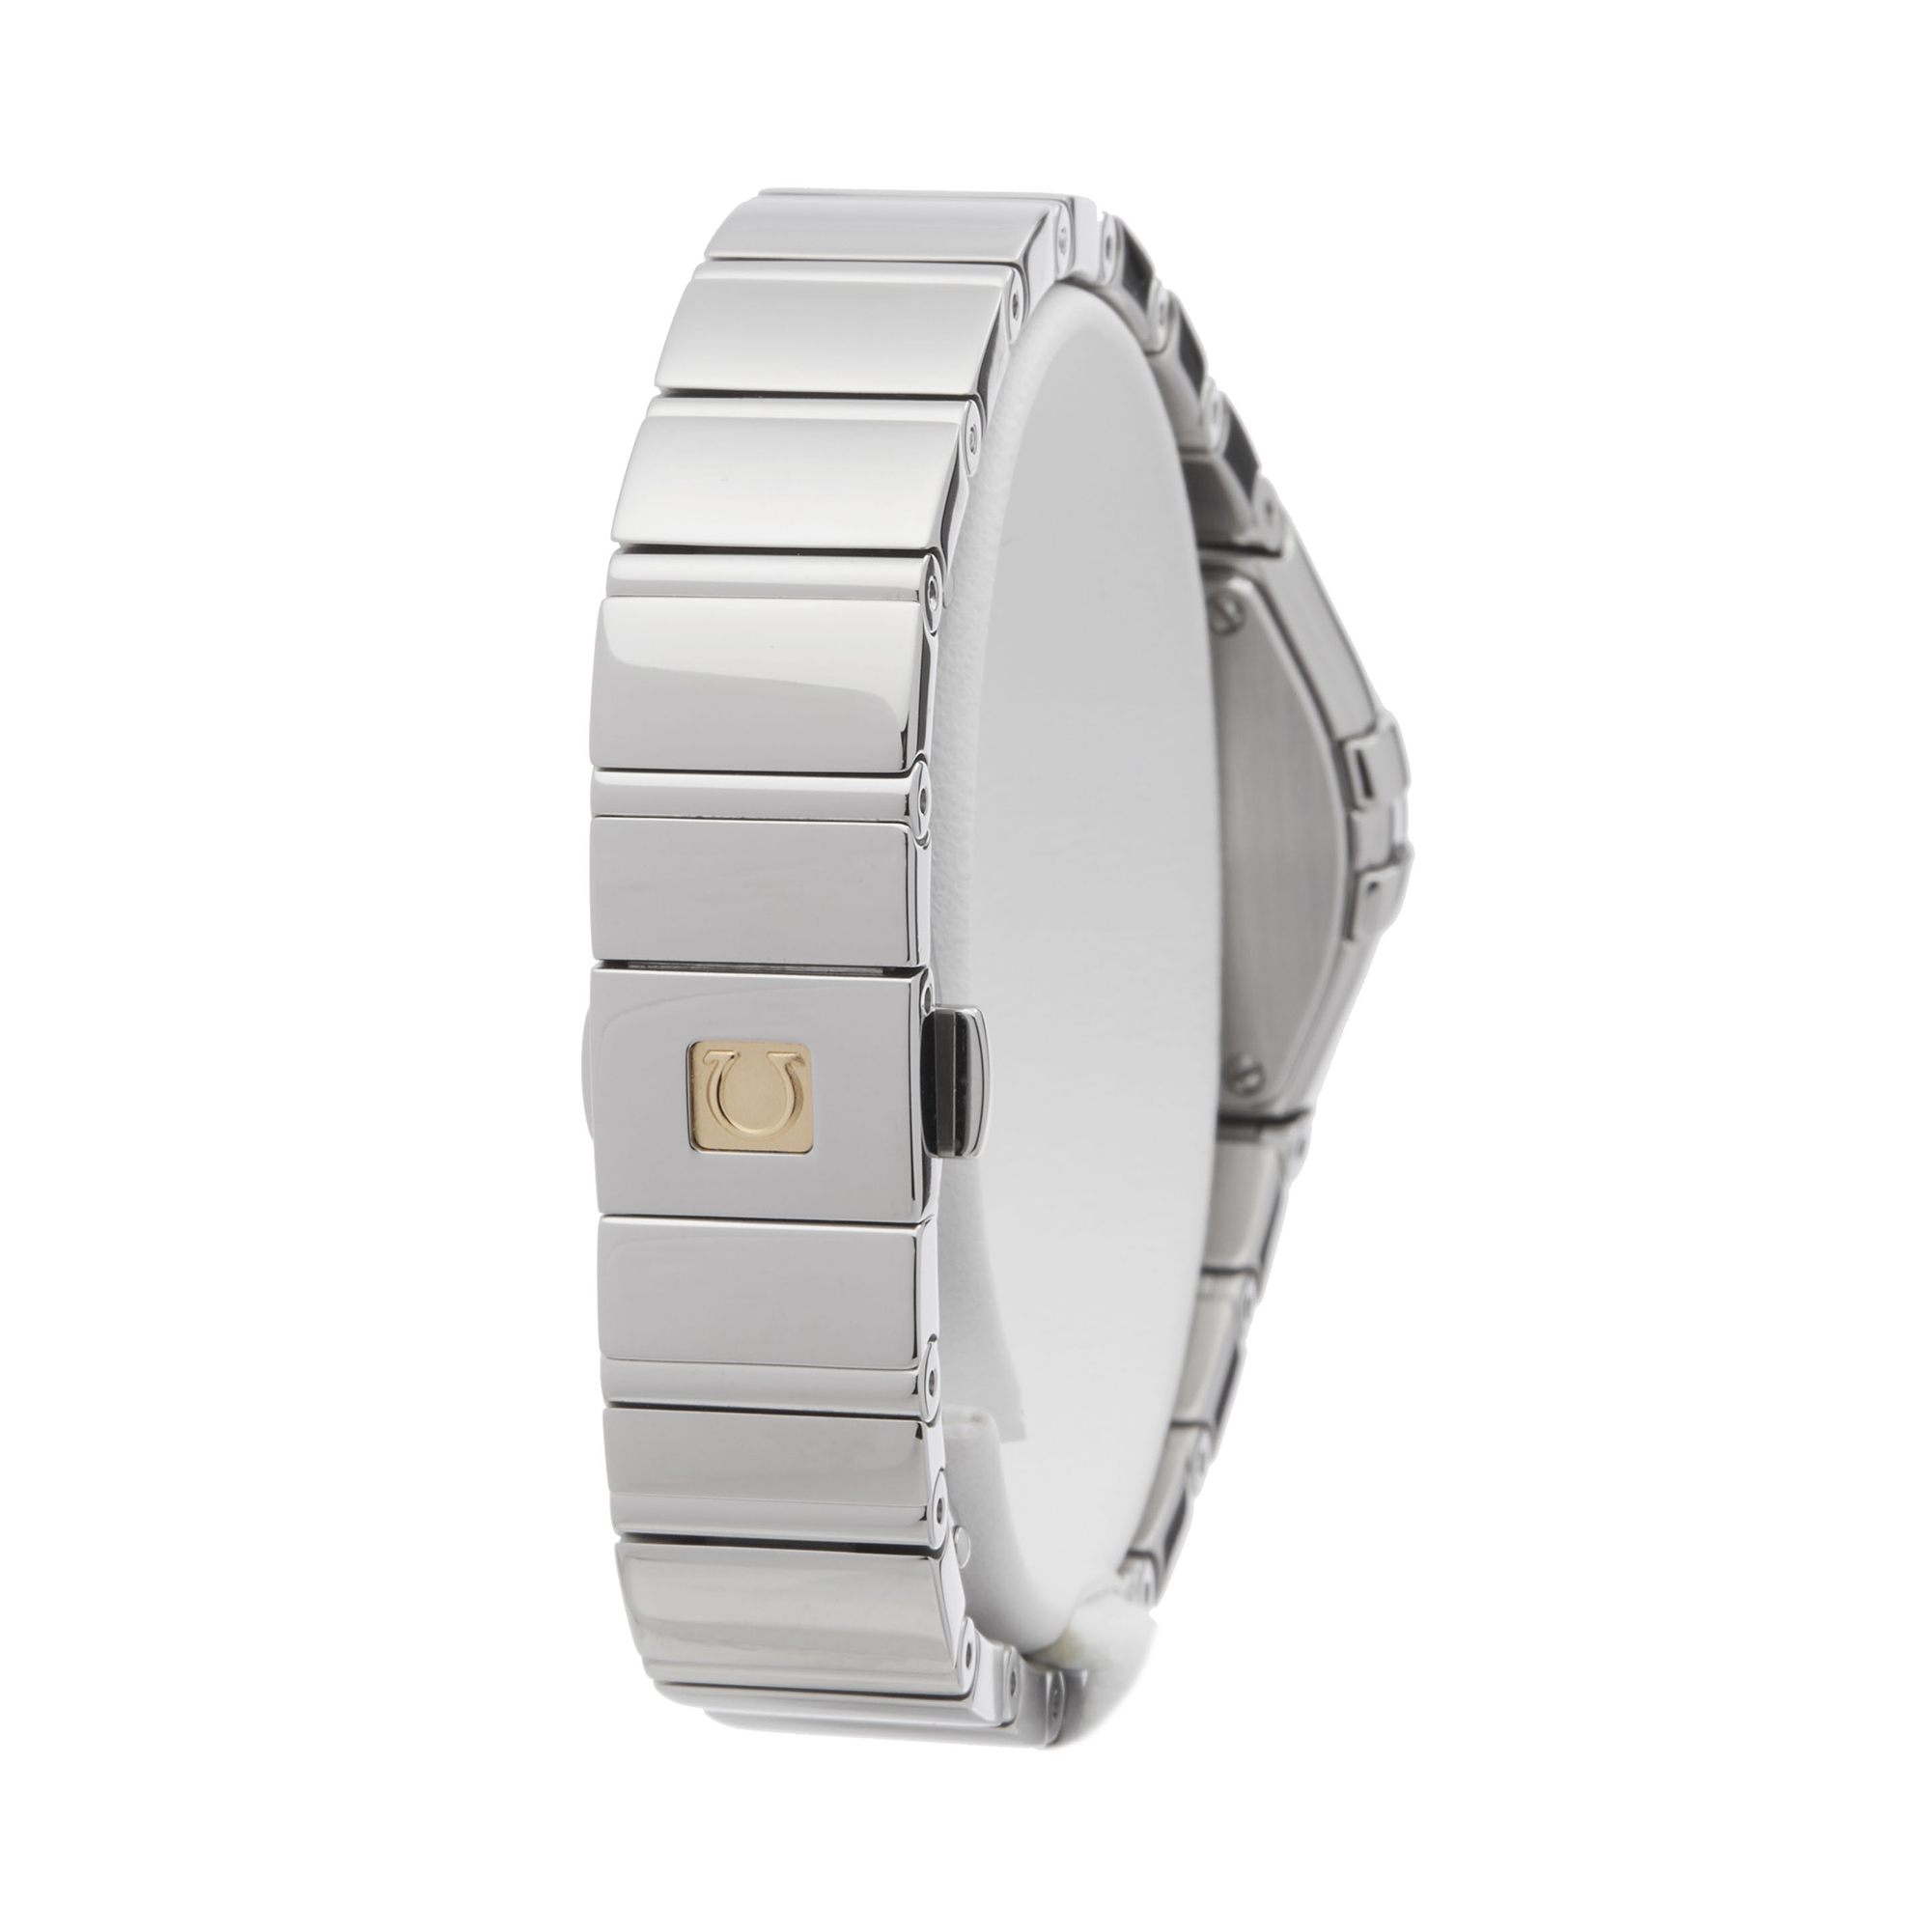 Omega Constellation 123.10.24.60.02.00 Ladies Stainless Steel Watch - Image 4 of 7